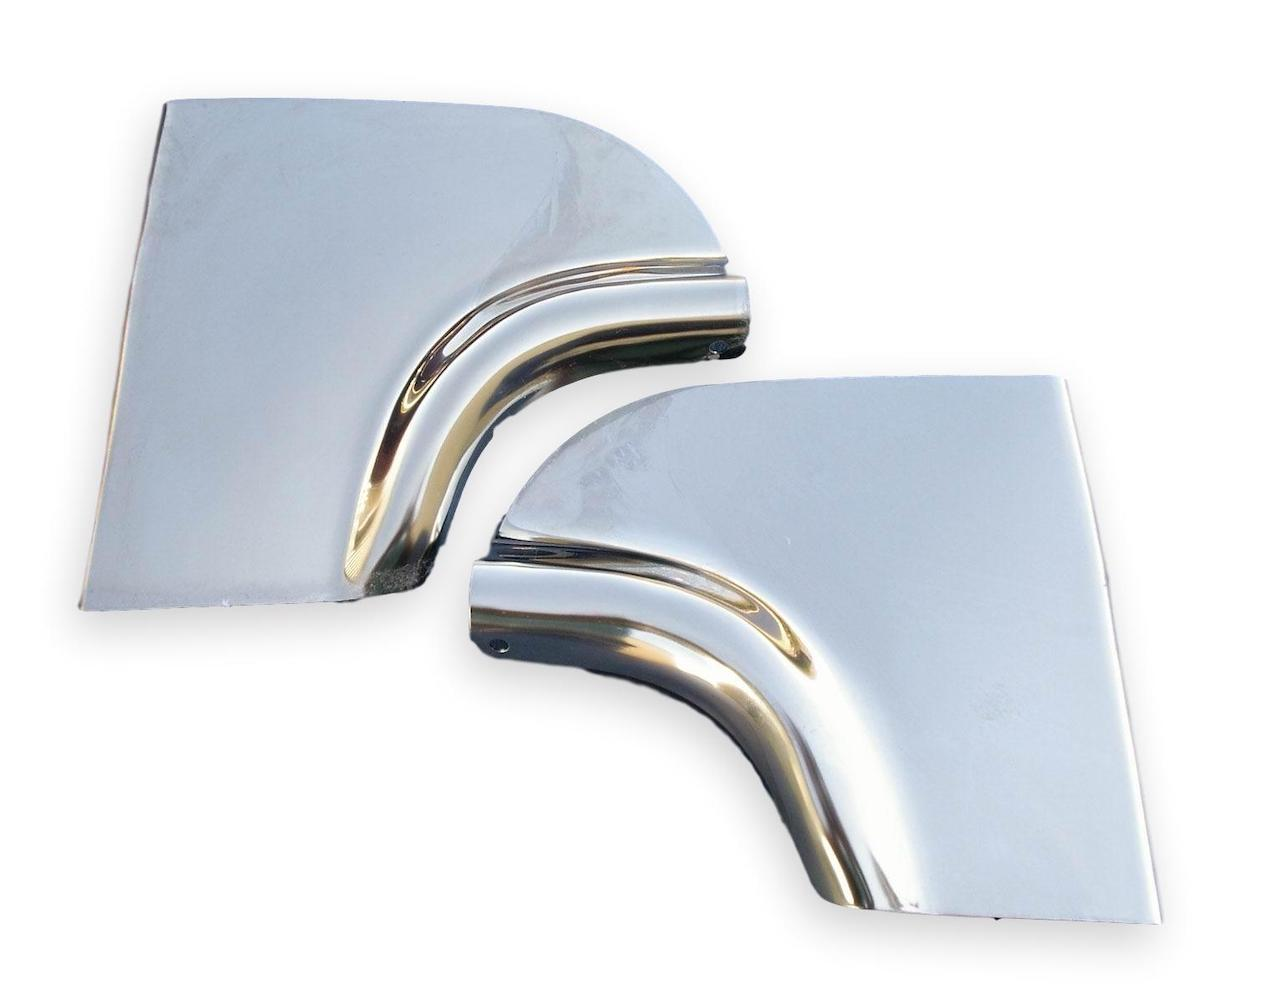 1955 Chevy Fender Skirt Scuff Pads Stainless Steel